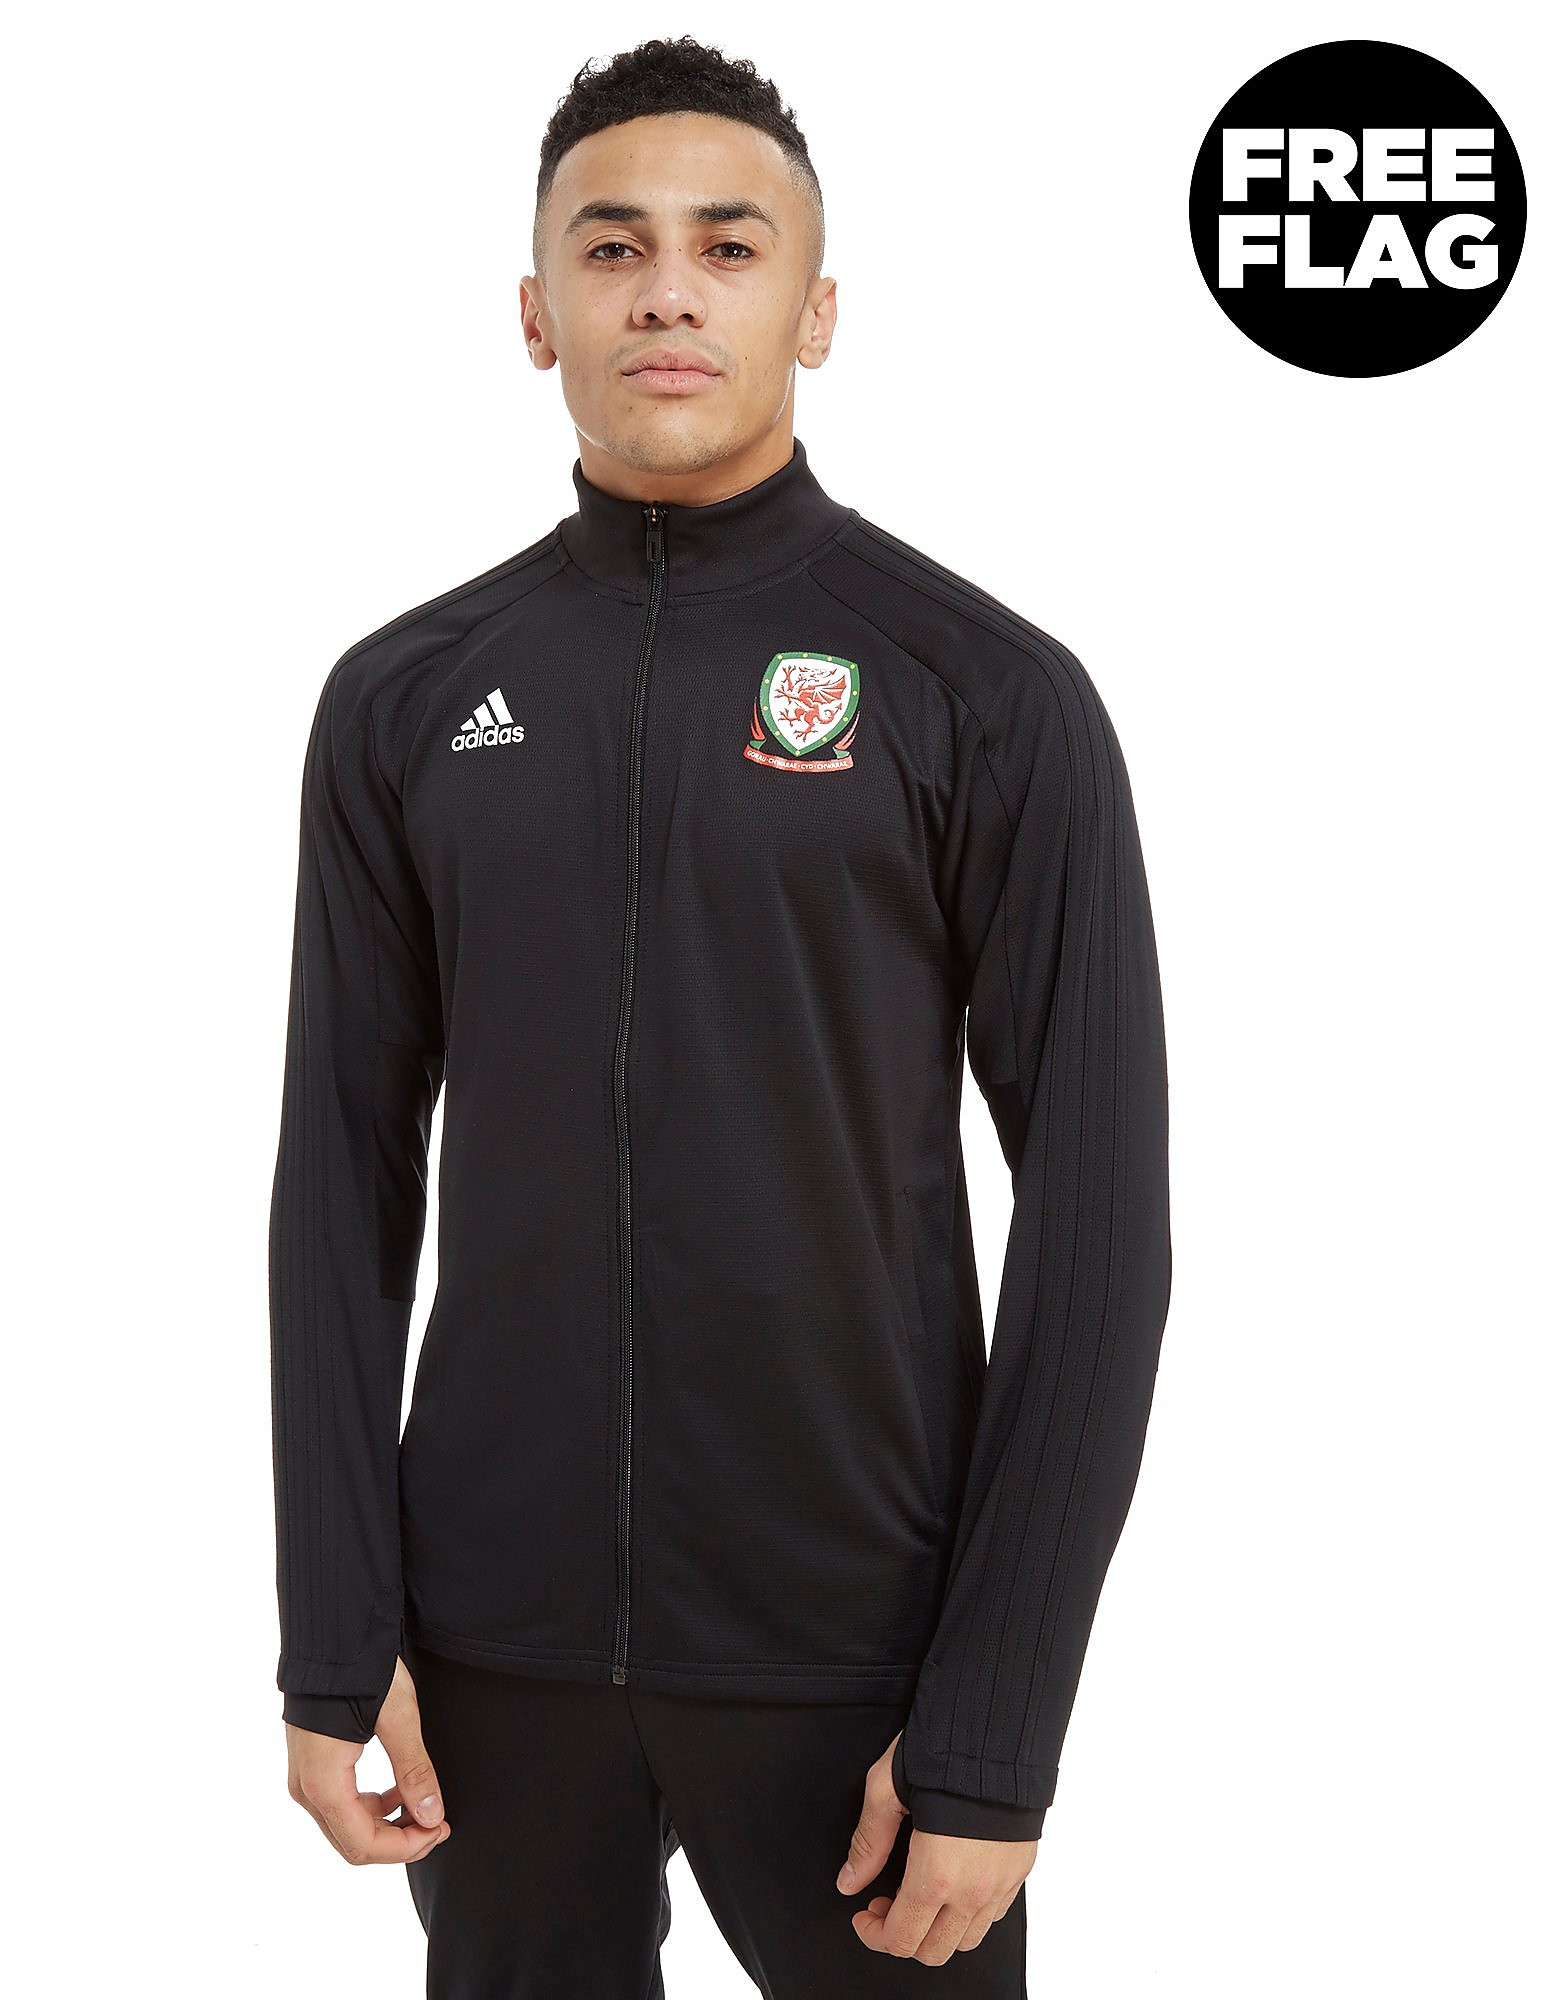 adidas FA Wales 2018 Full Zip Track Top